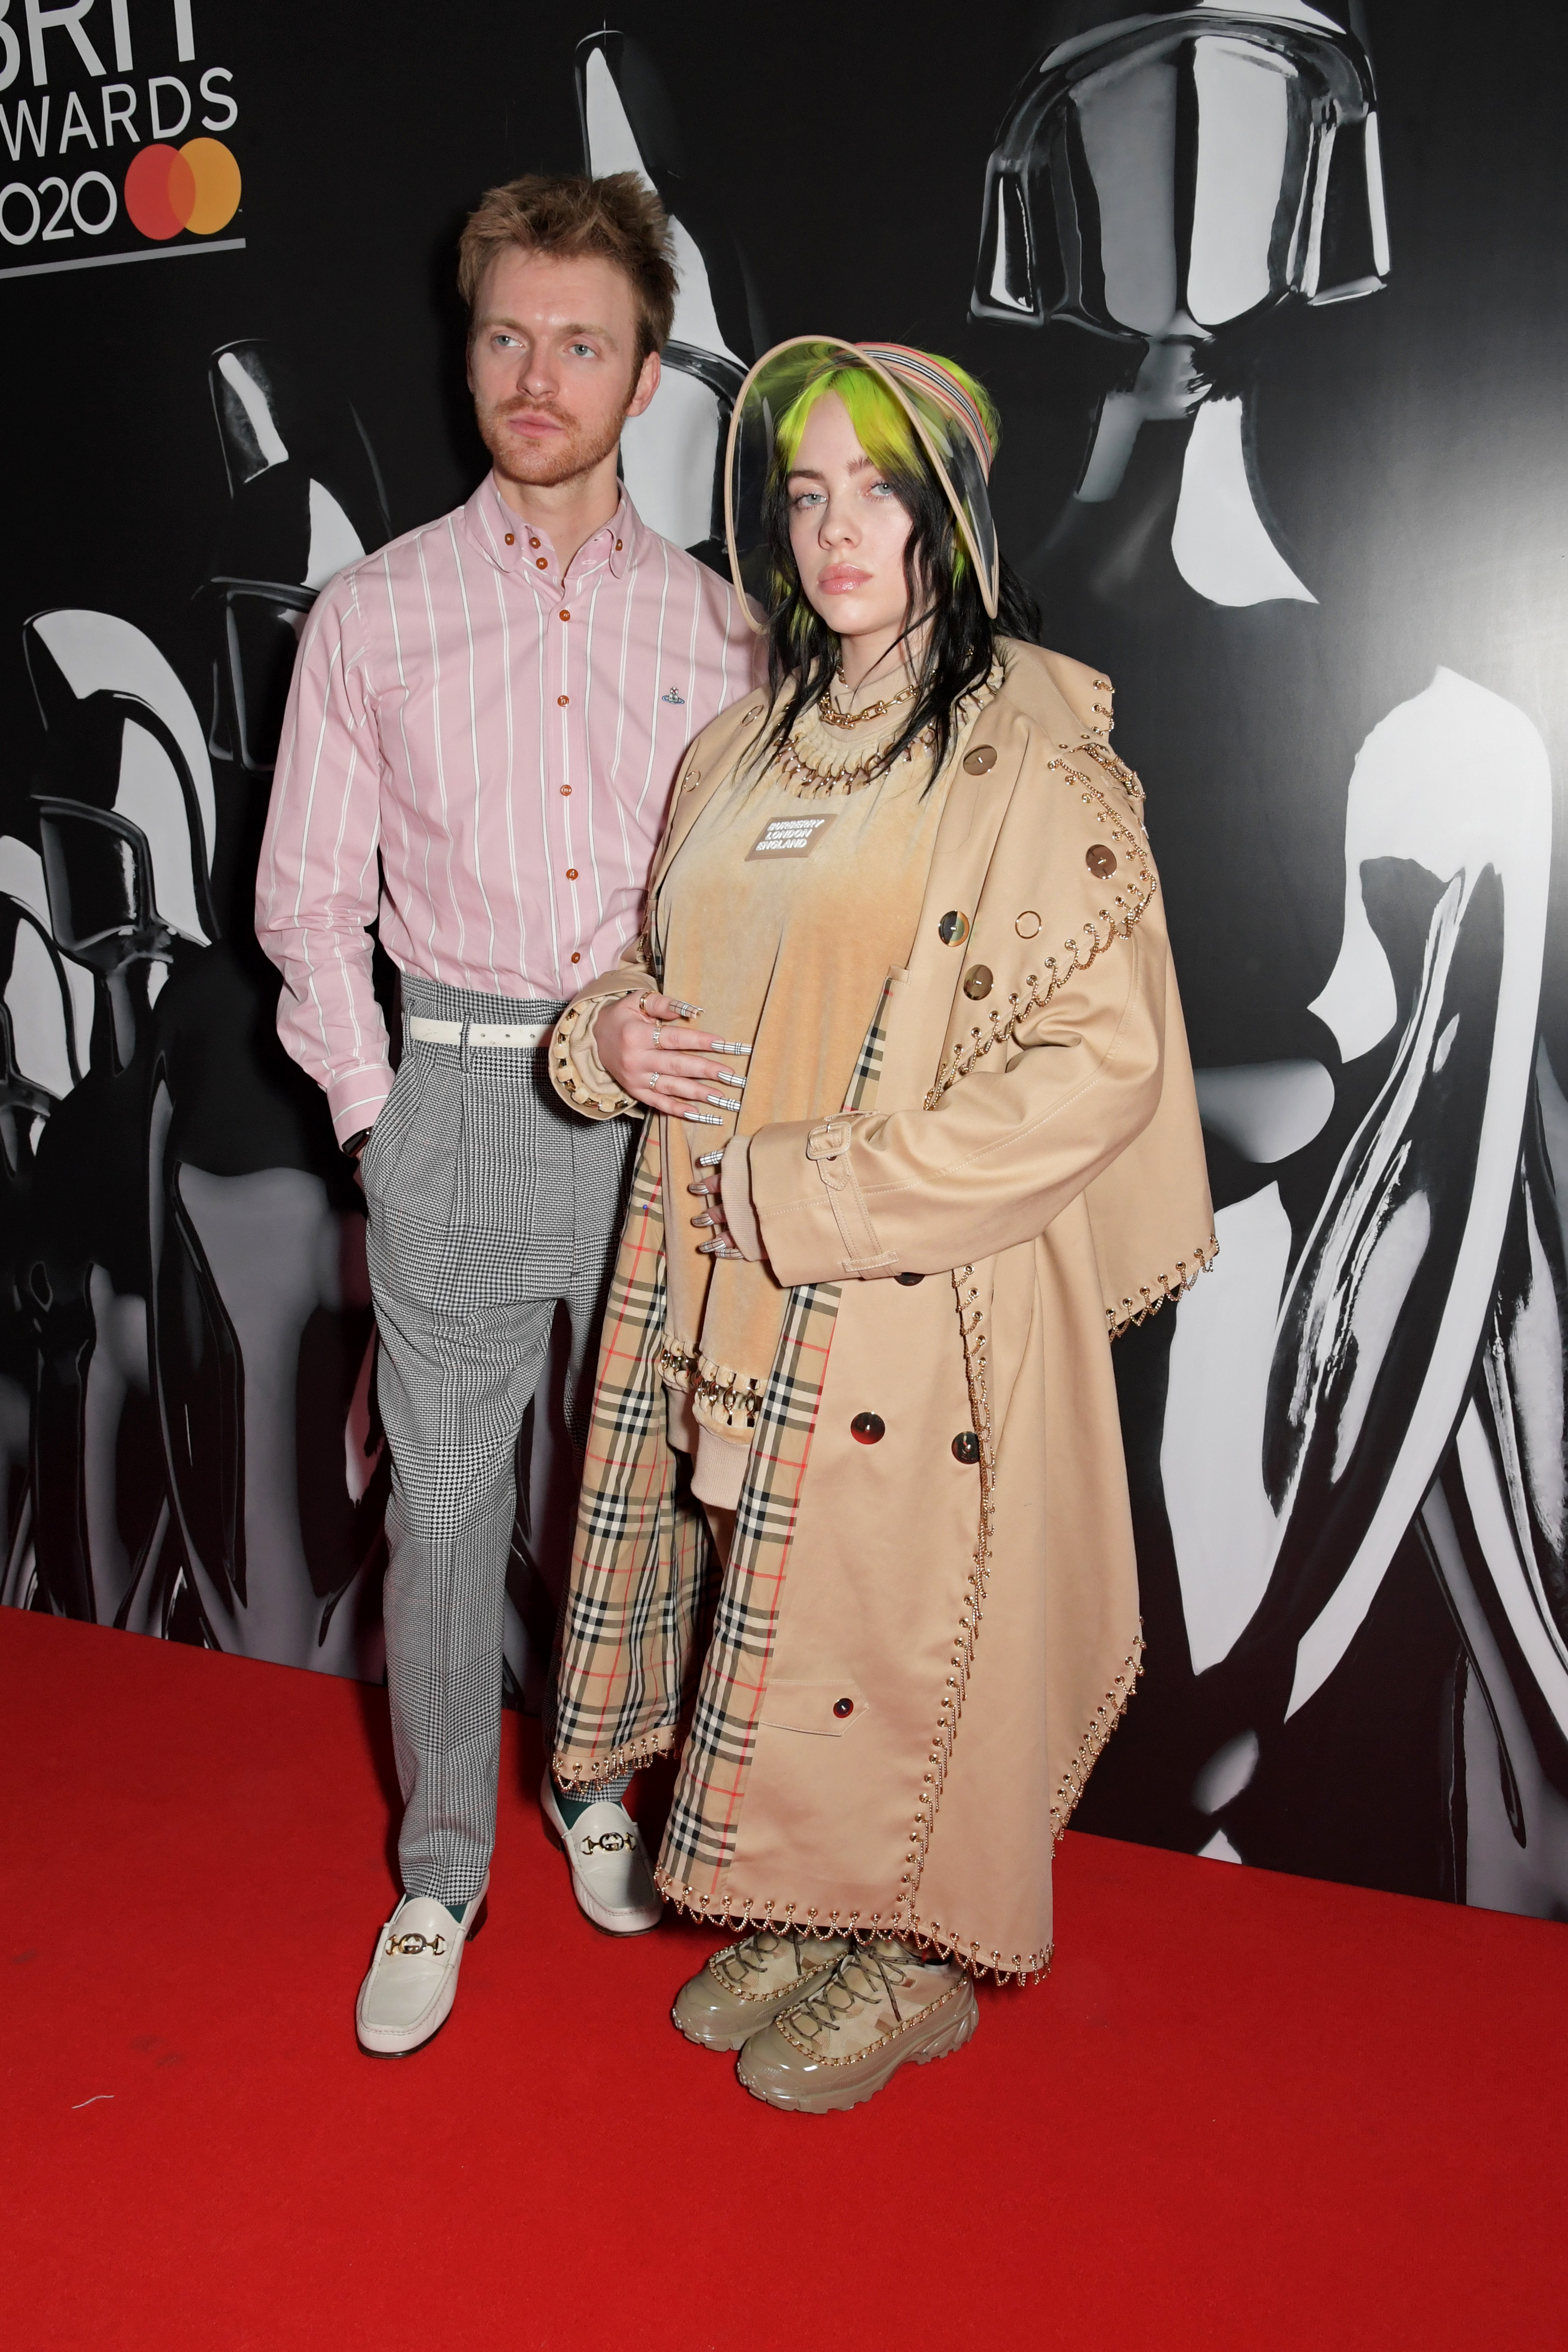 Finneas O'Connell and Billie Eilish attend The BRIT Awards 2020 at The O2 Arena on February 18, 2020 in London, England.  (Photo by David M. Benett/Dave Benett/Getty Images)